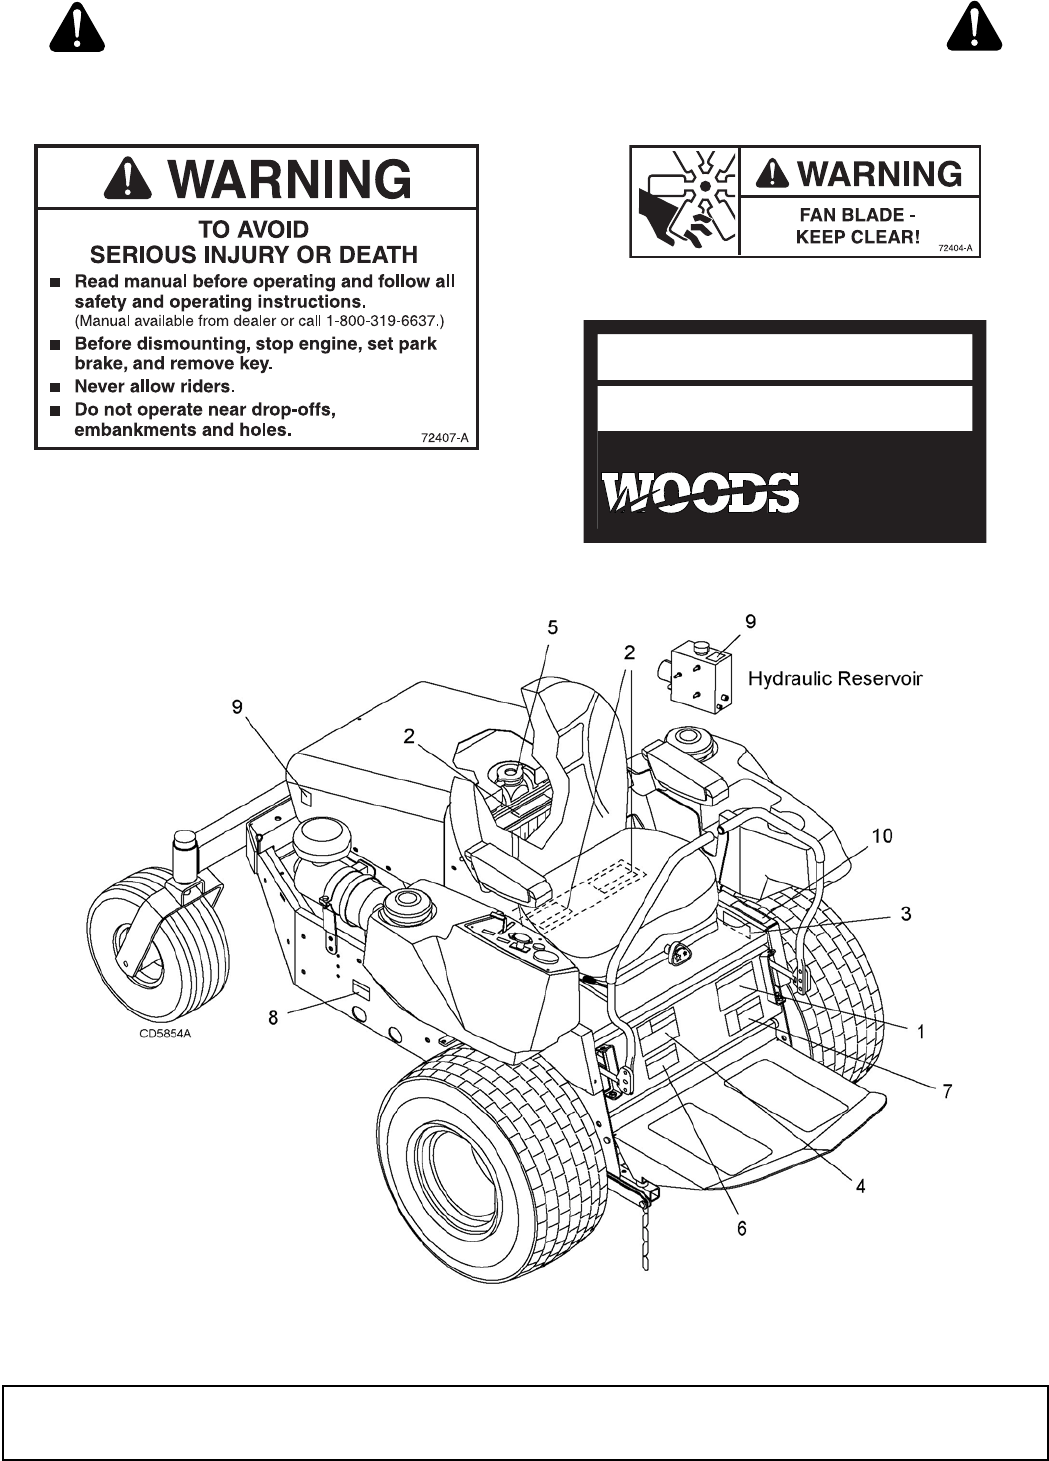 Page 9 of Woods Equipment Lawn Mower FZ25D User Guide